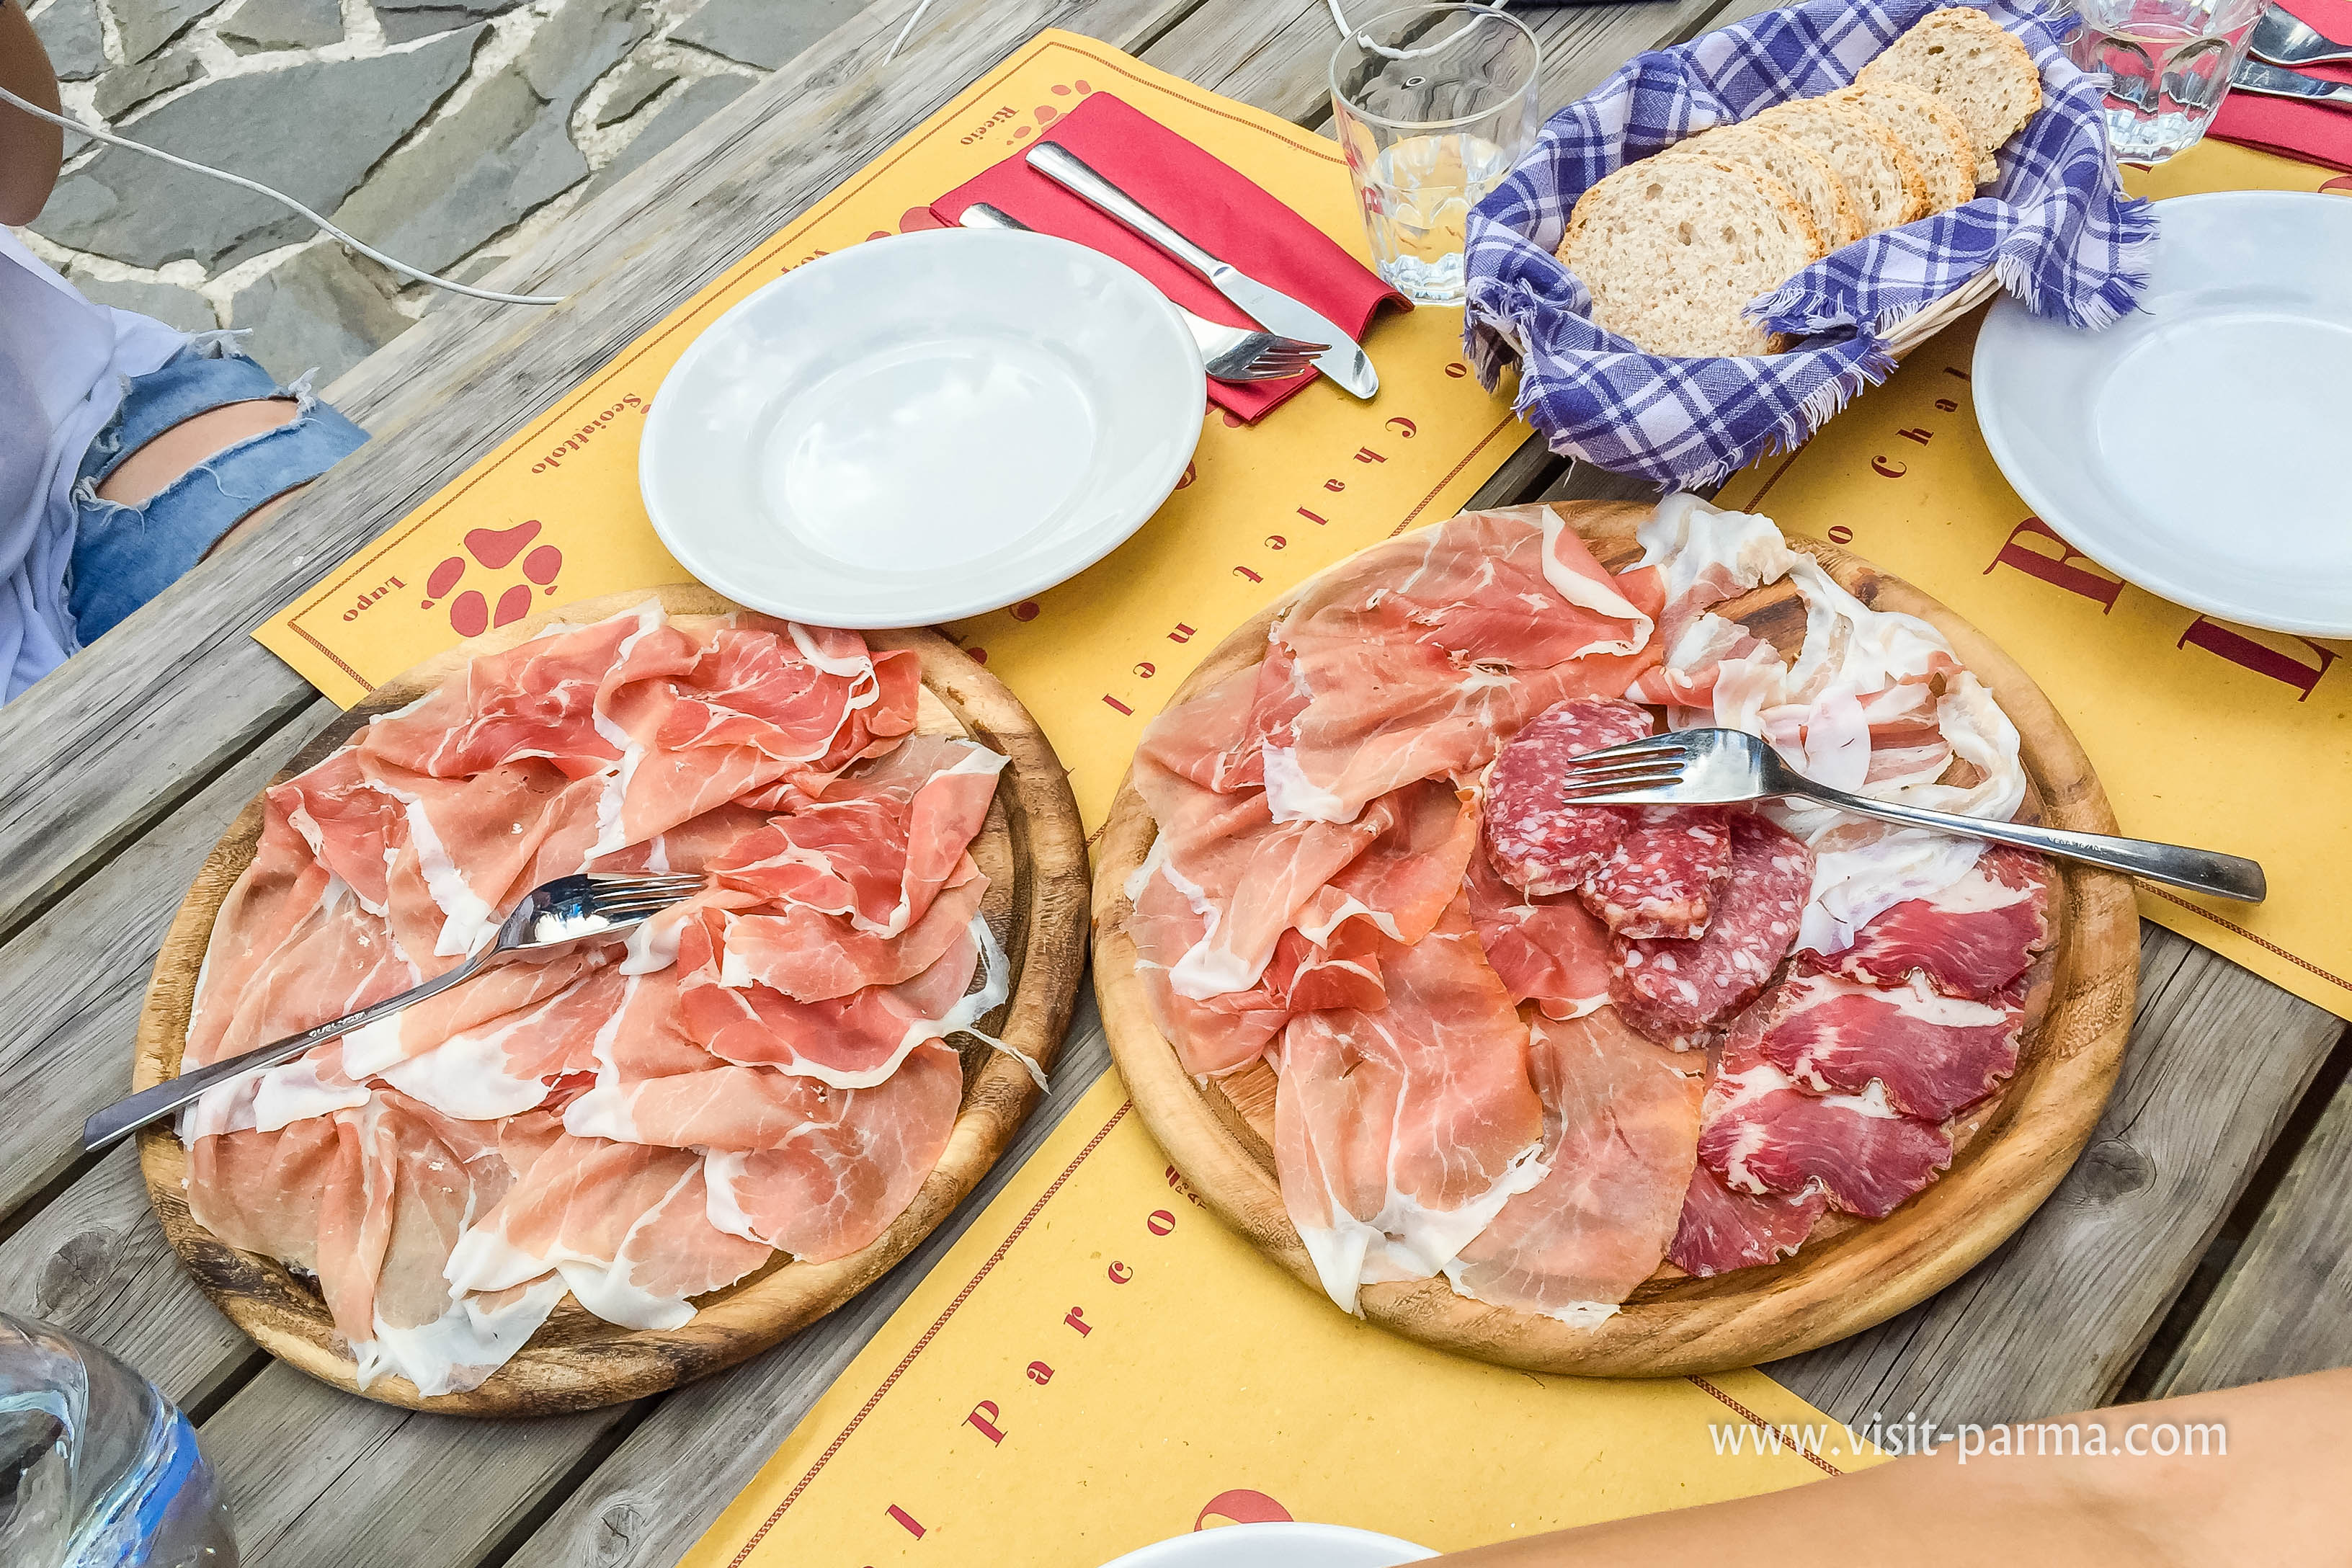 Cold Cuts Parma Ham And Salami In A Refuge Lagdei The 100 Lakes Park